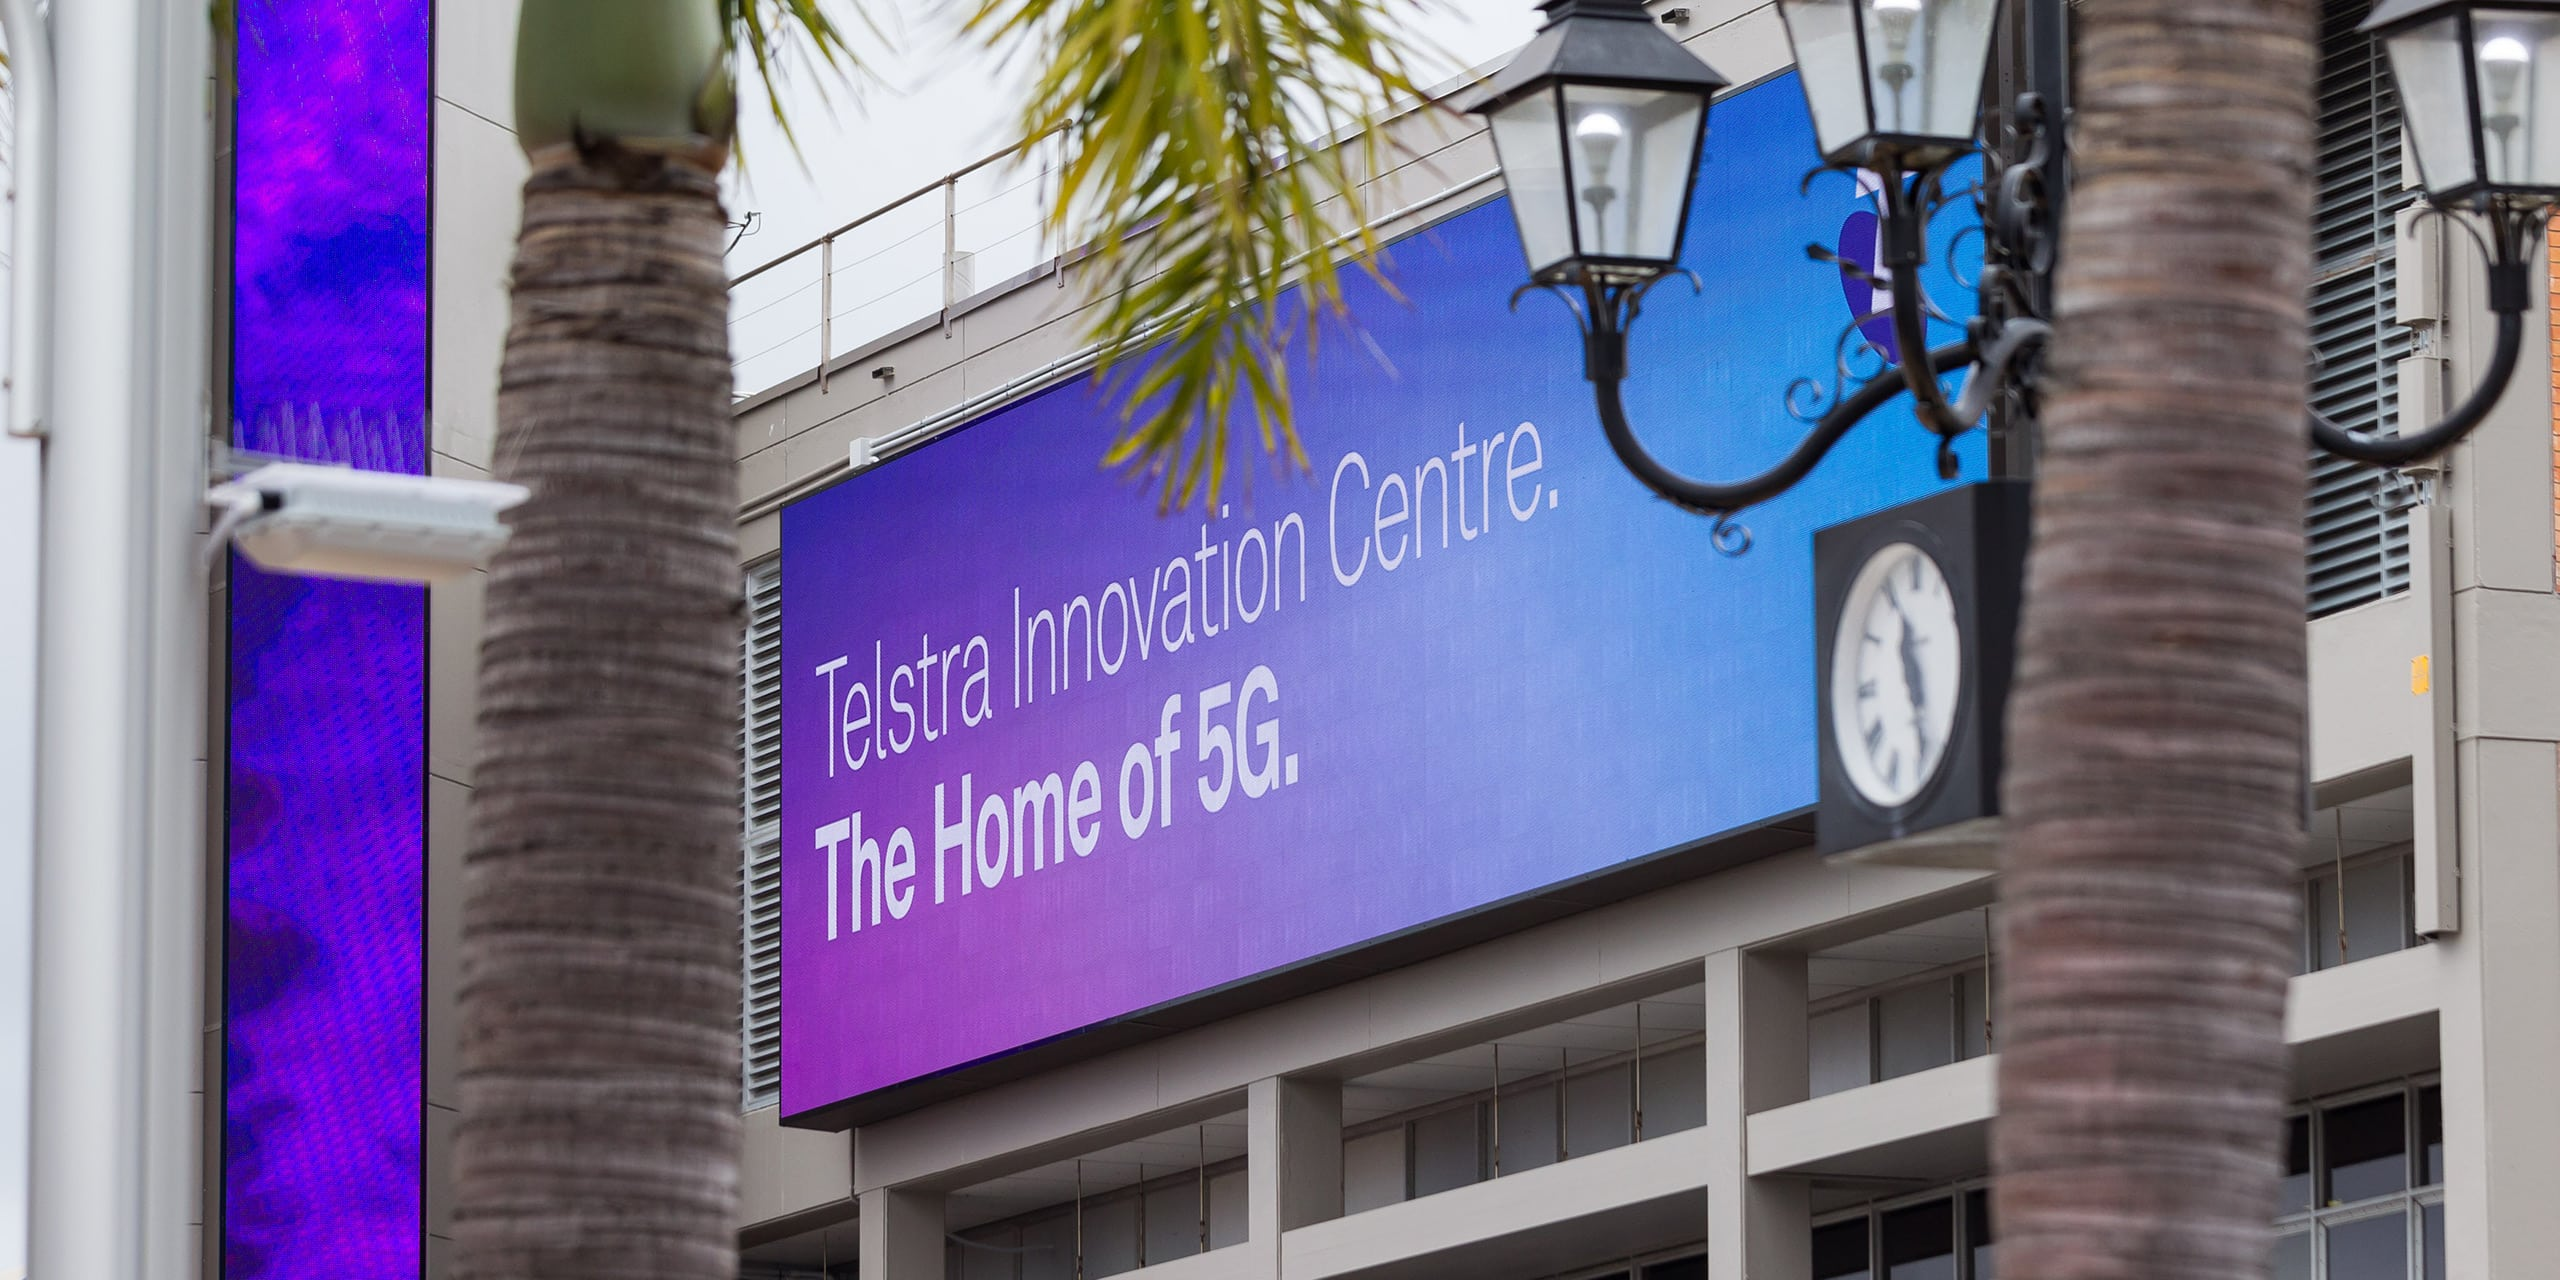 Telstra 5G innovation Centre billboard